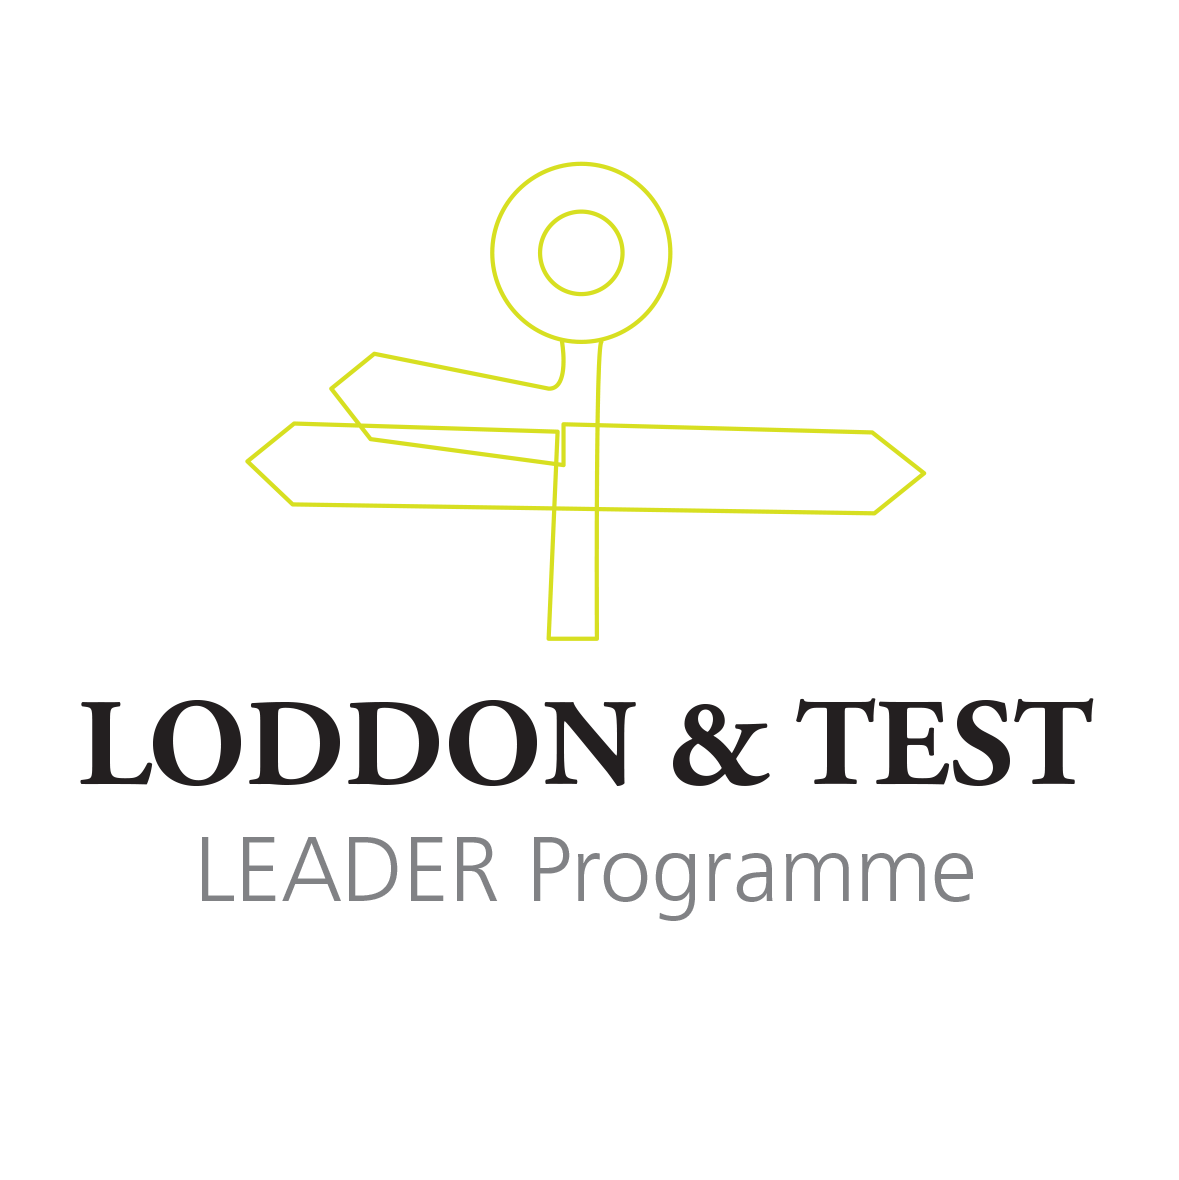 loddon and test logo concept